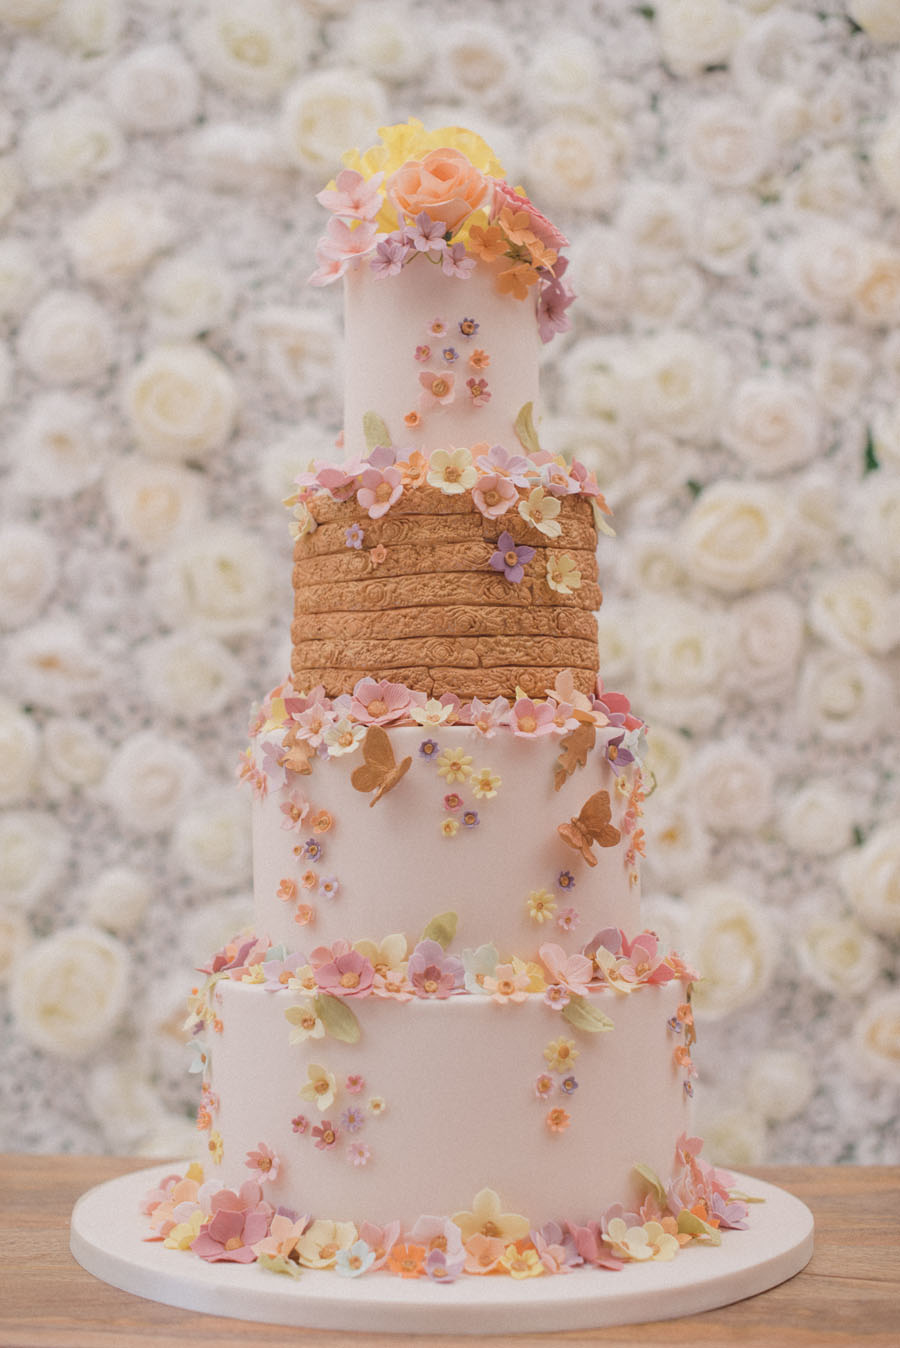 Bluebell-Kitchen-the-secret-garden-wedding-cake